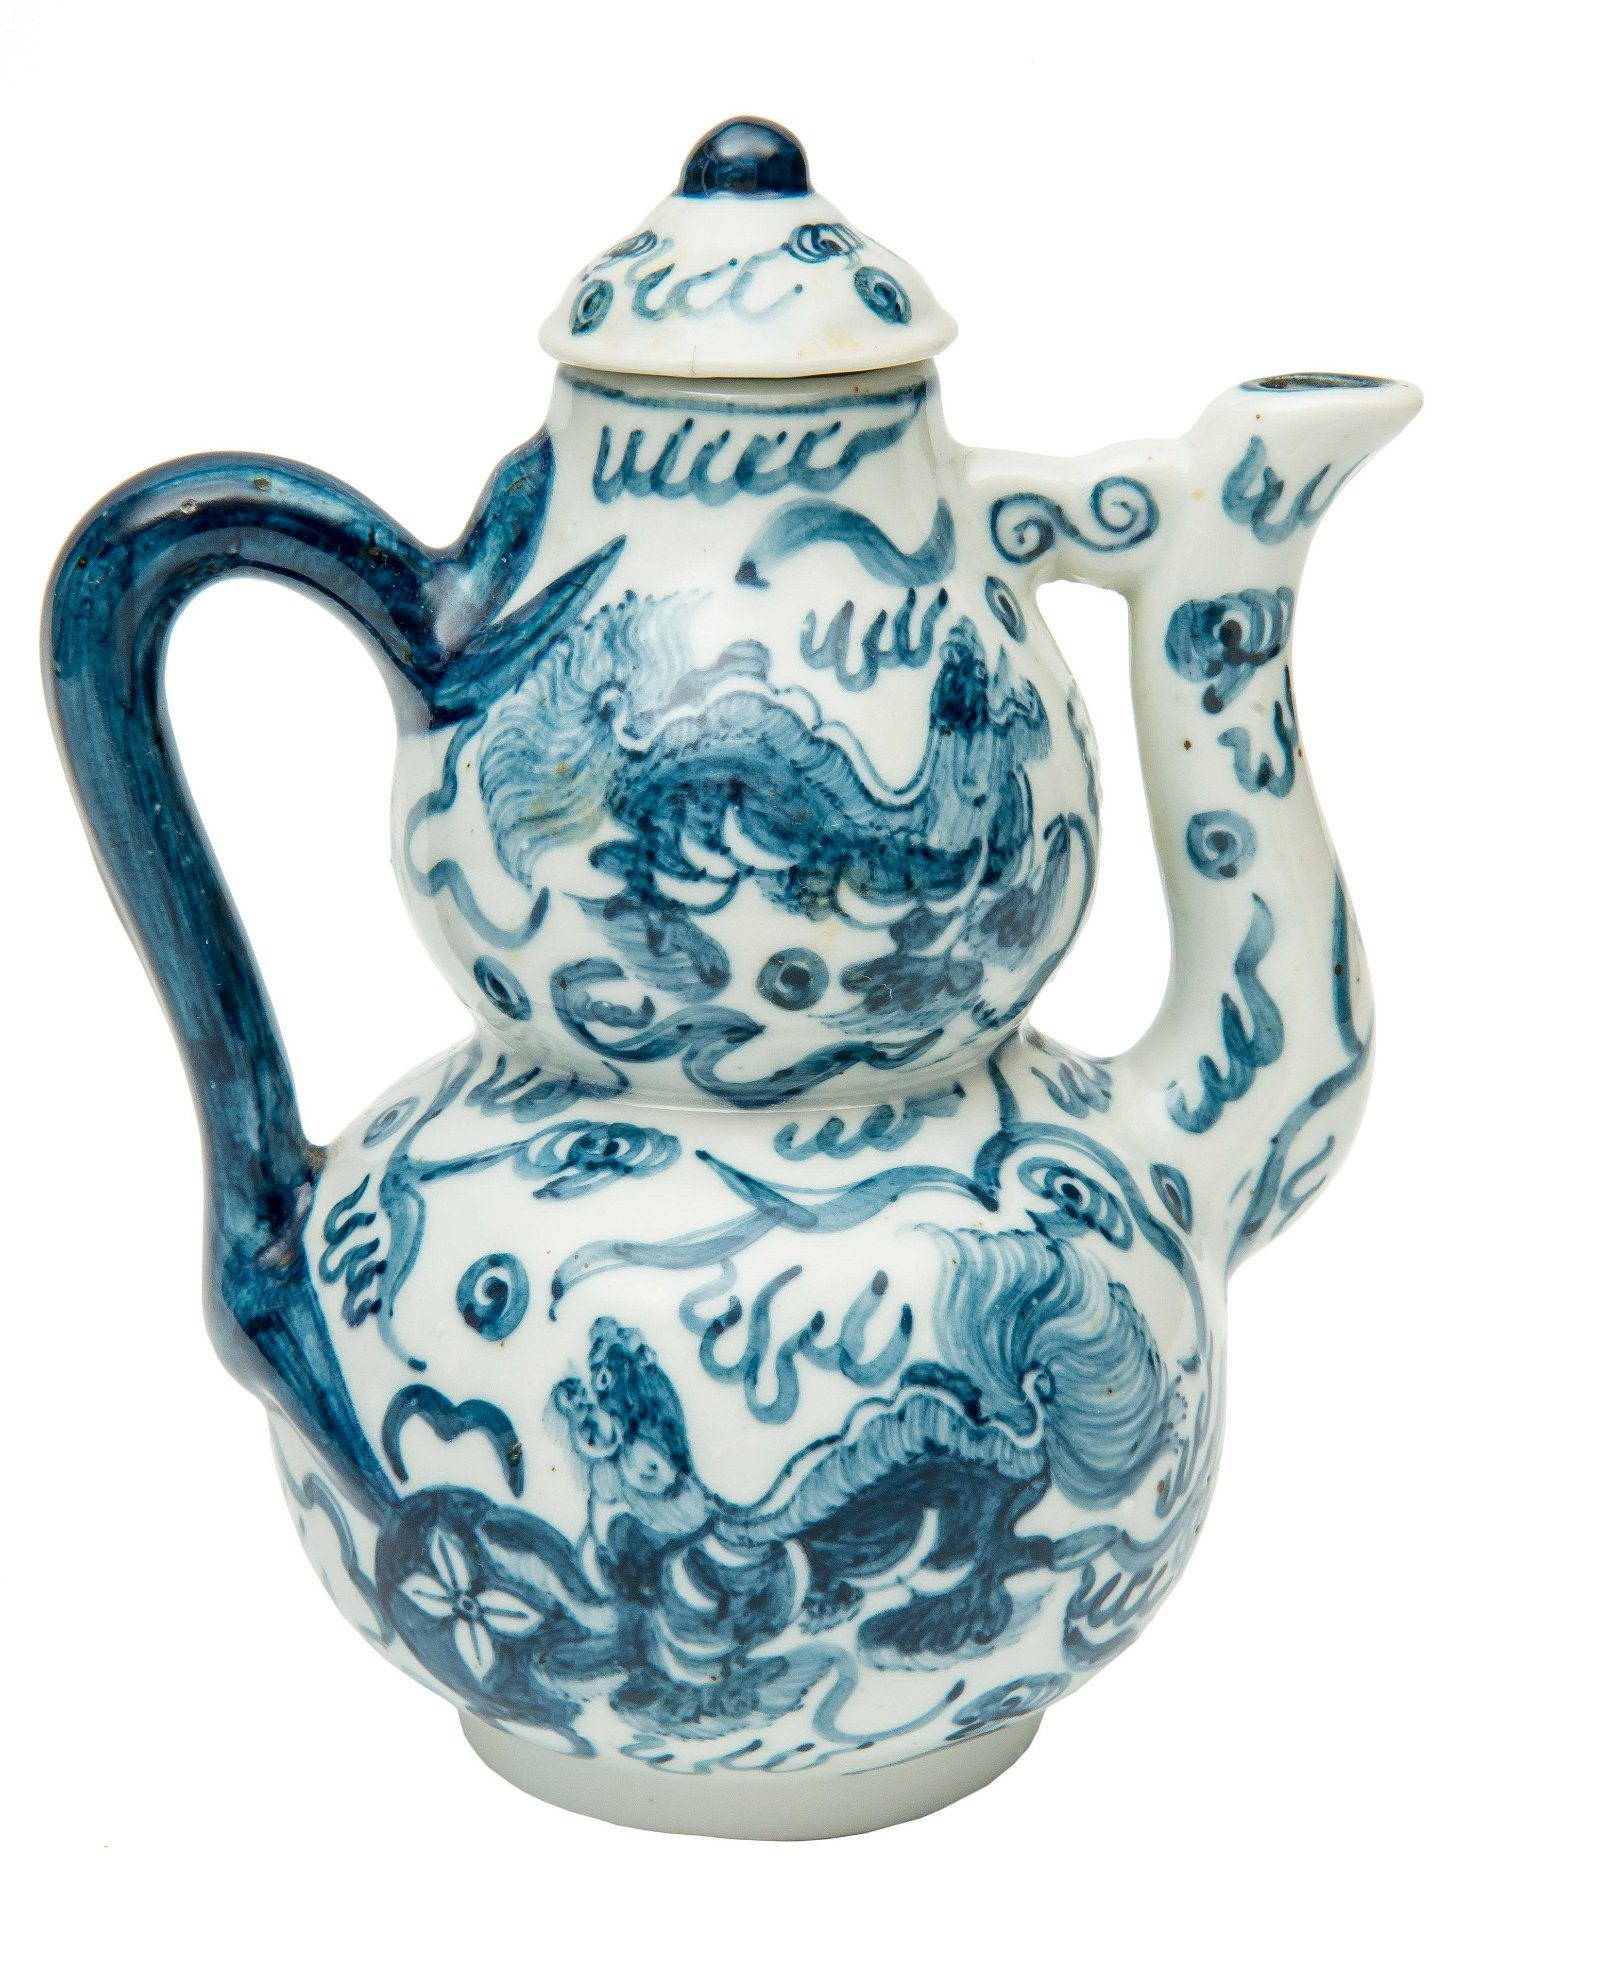 A Chinese Blue and White Porcelain Coffee pot.